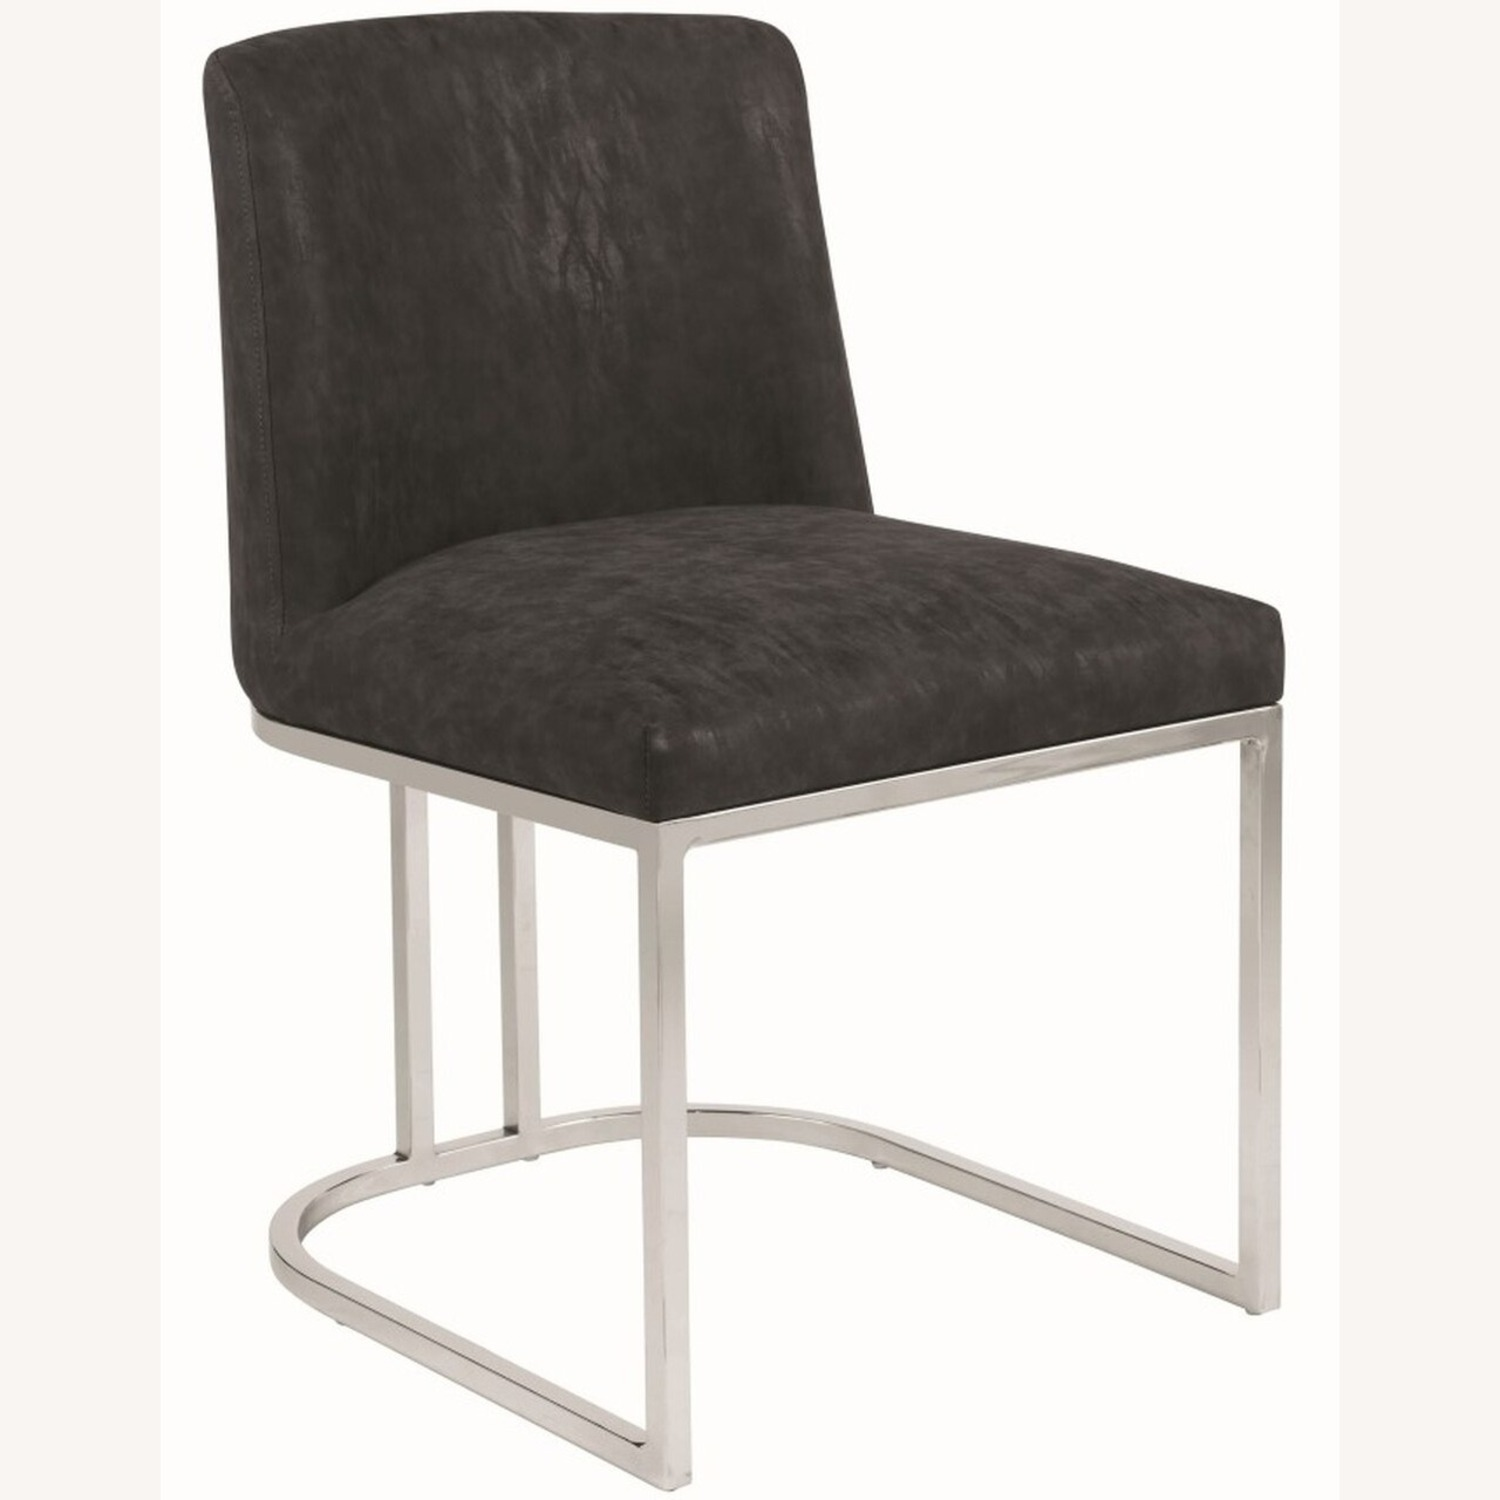 Modern Dining Chair In Black Leatherette - image-0